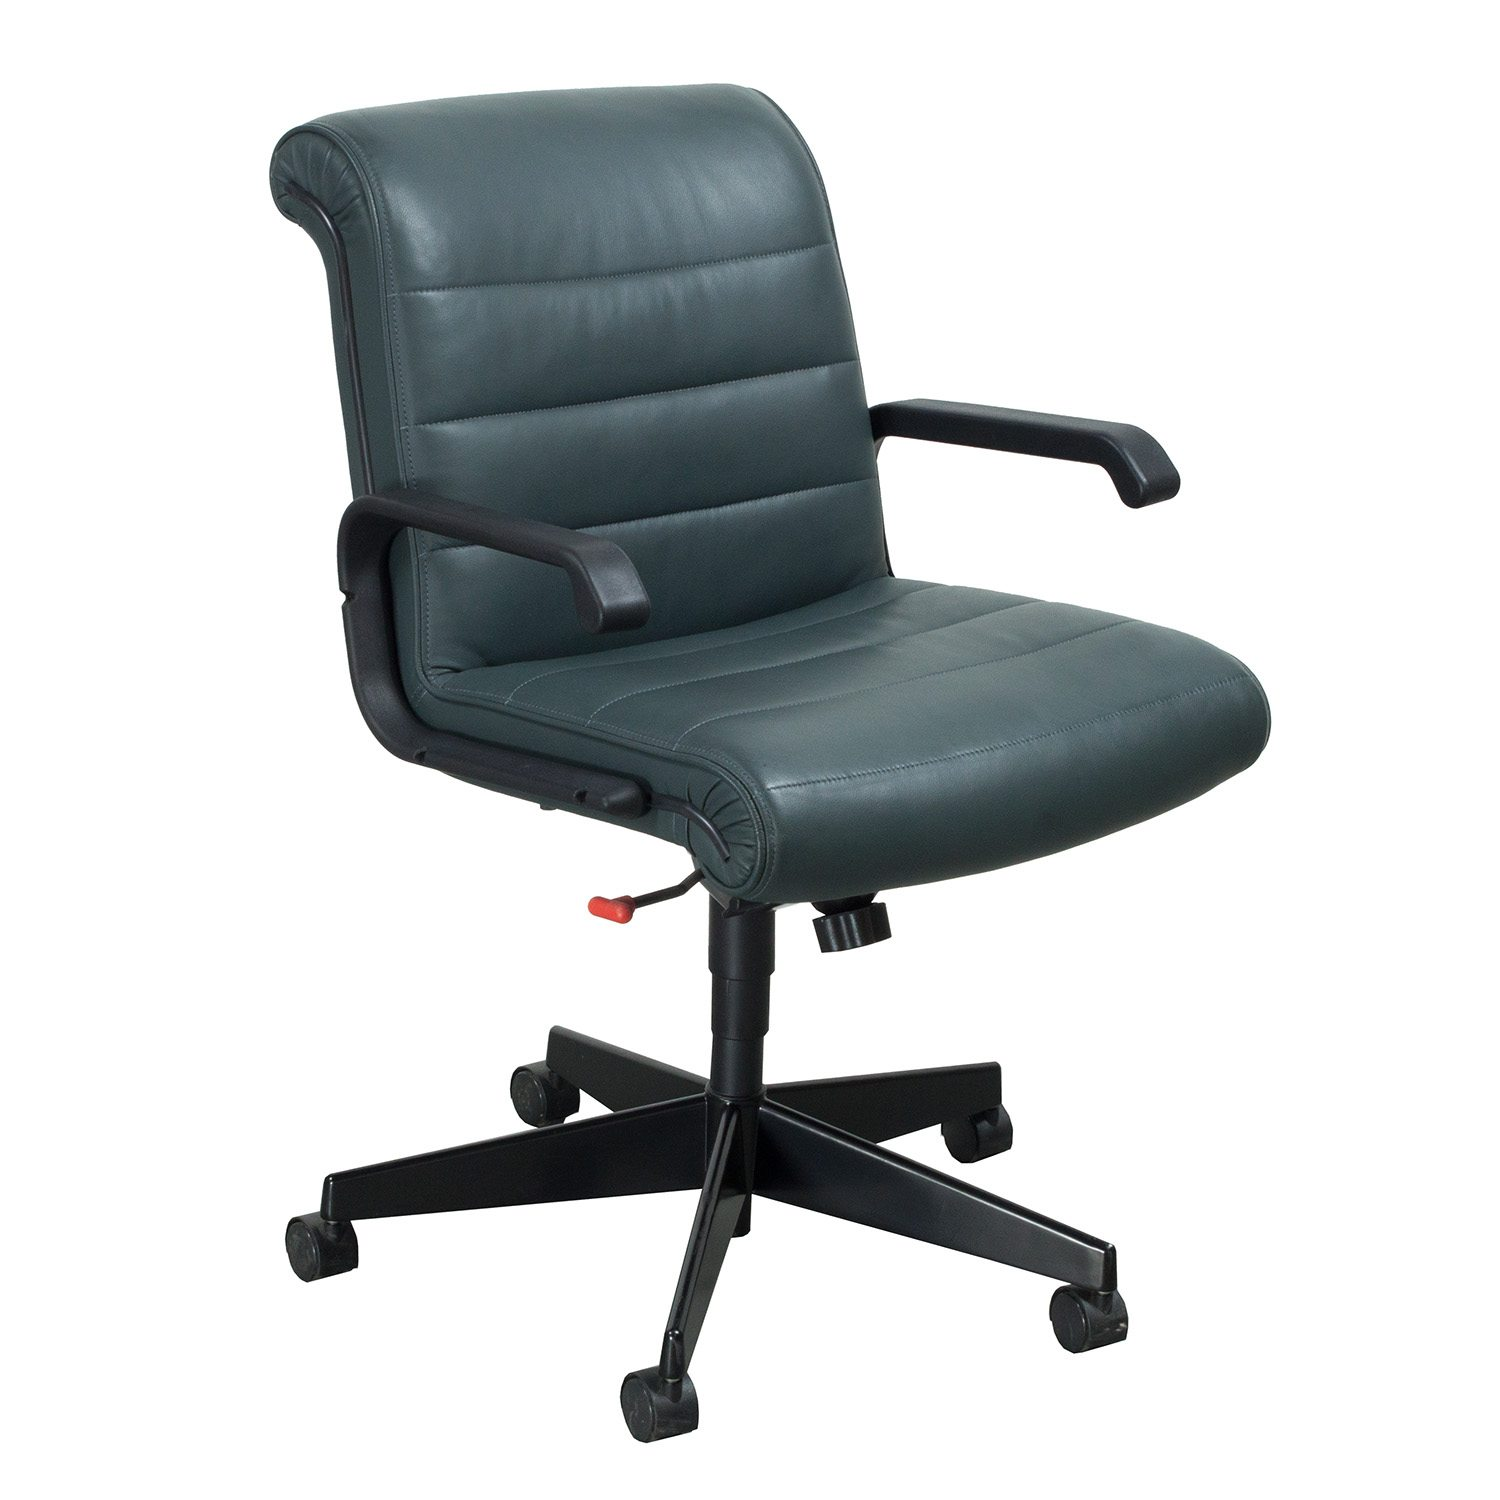 Knoll Sapper Used Leather Managerial Chair, Forest Green